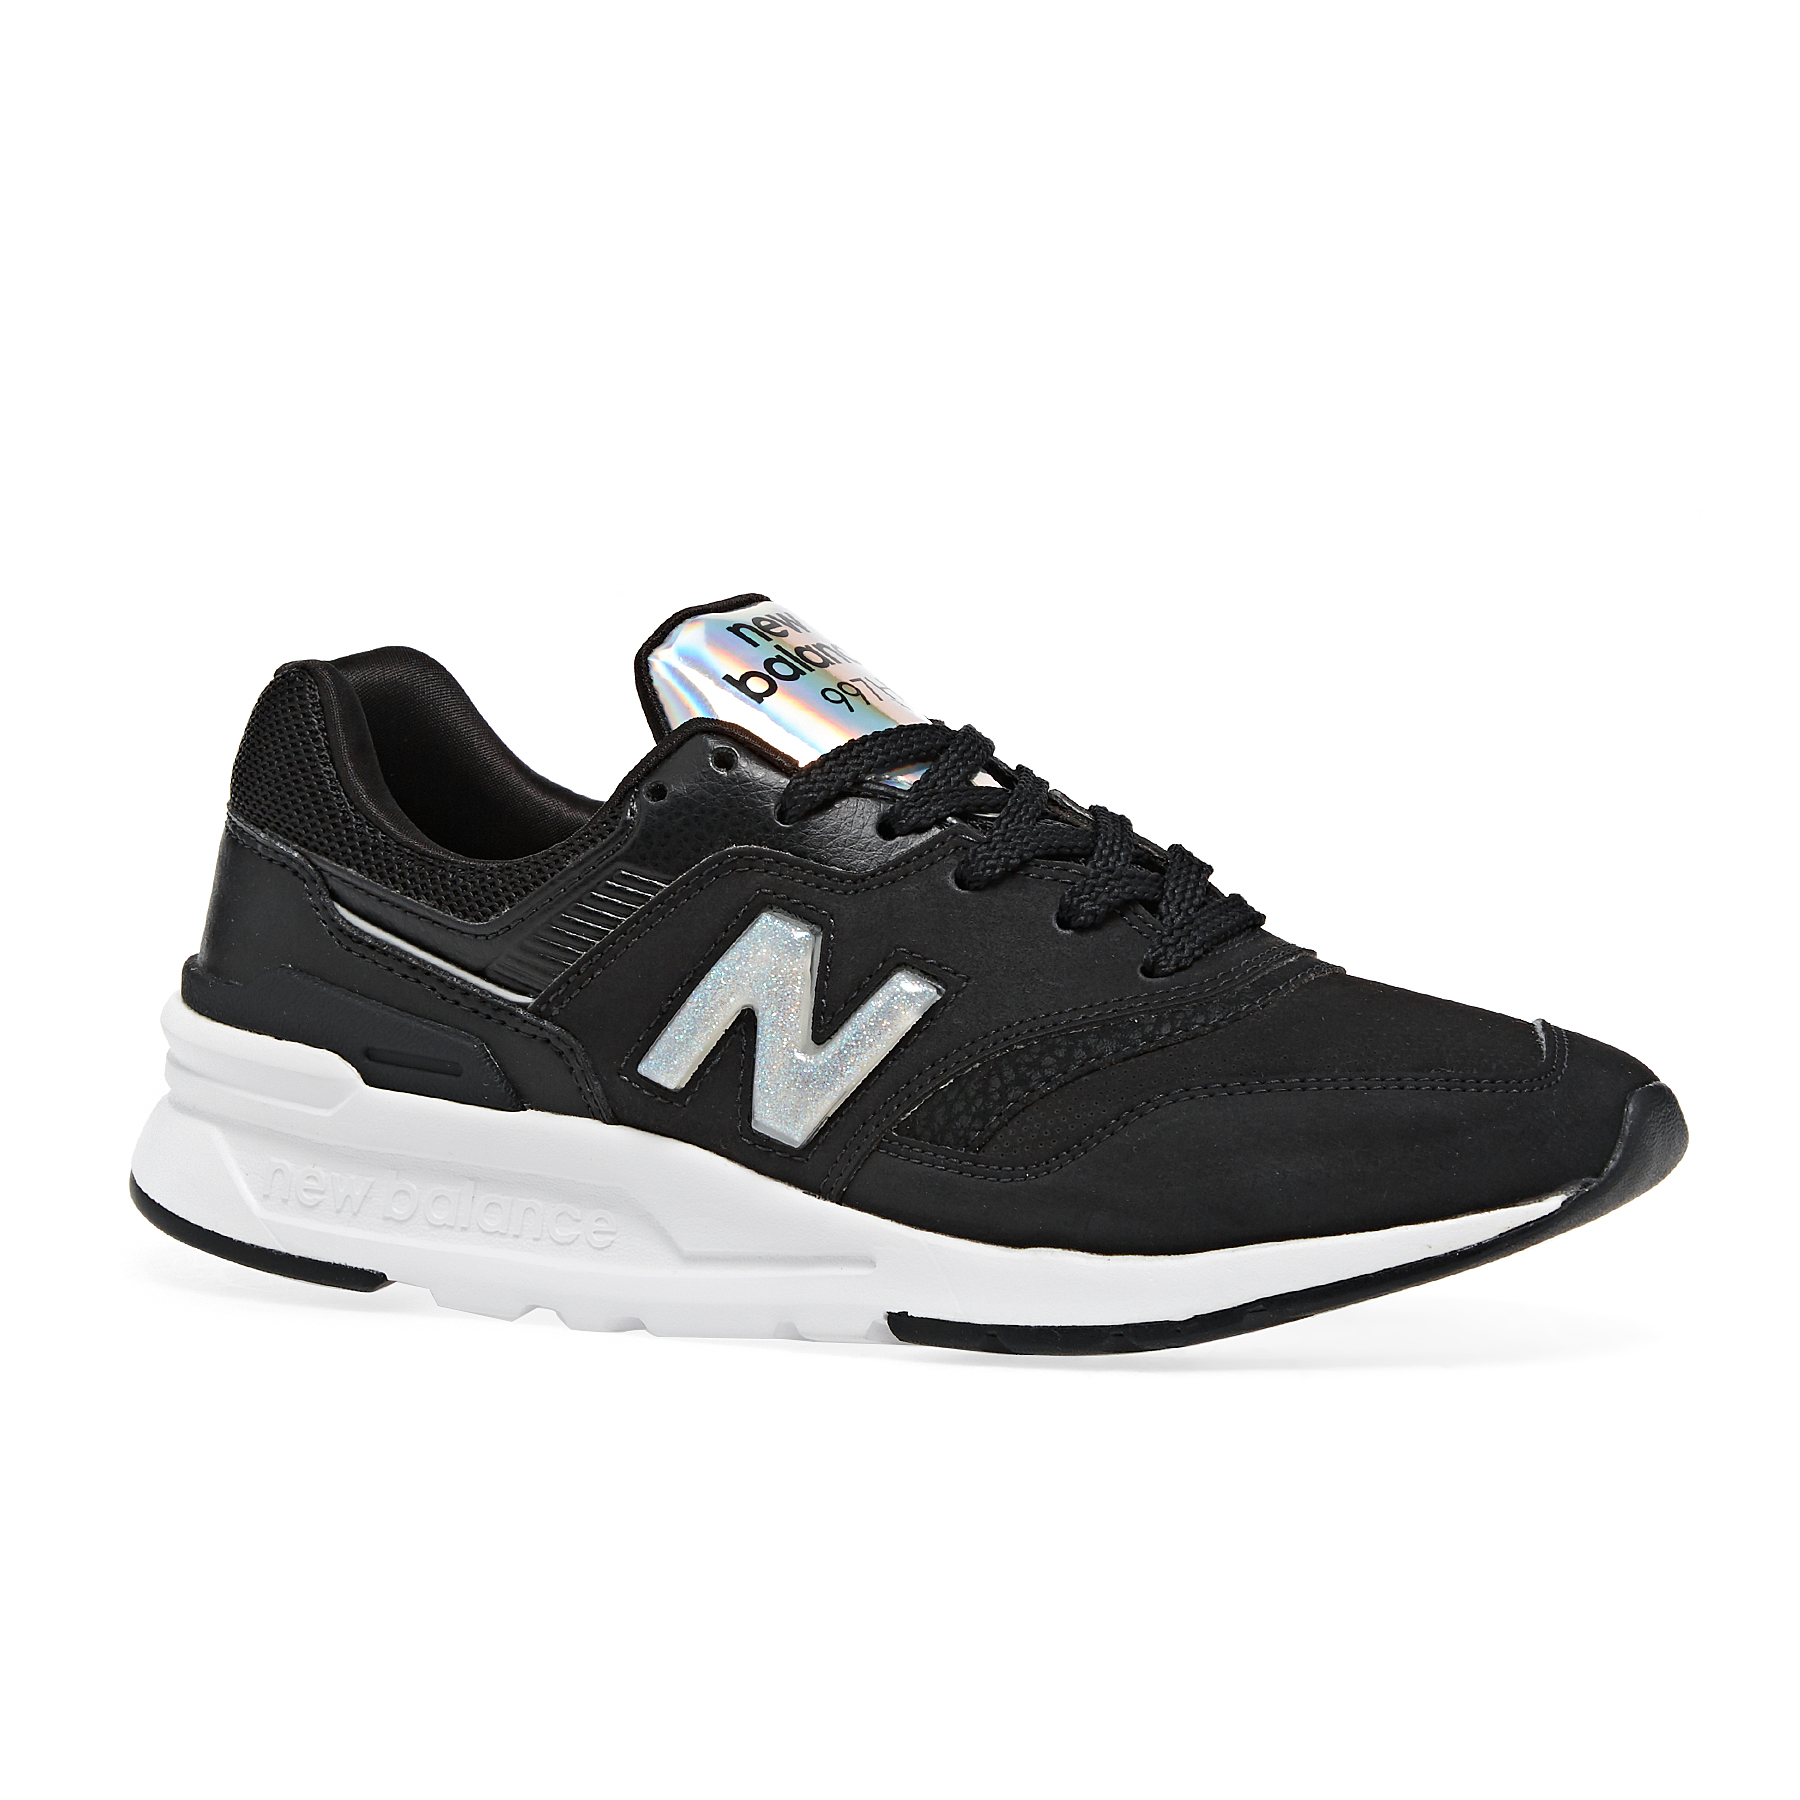 997h new balance in United States